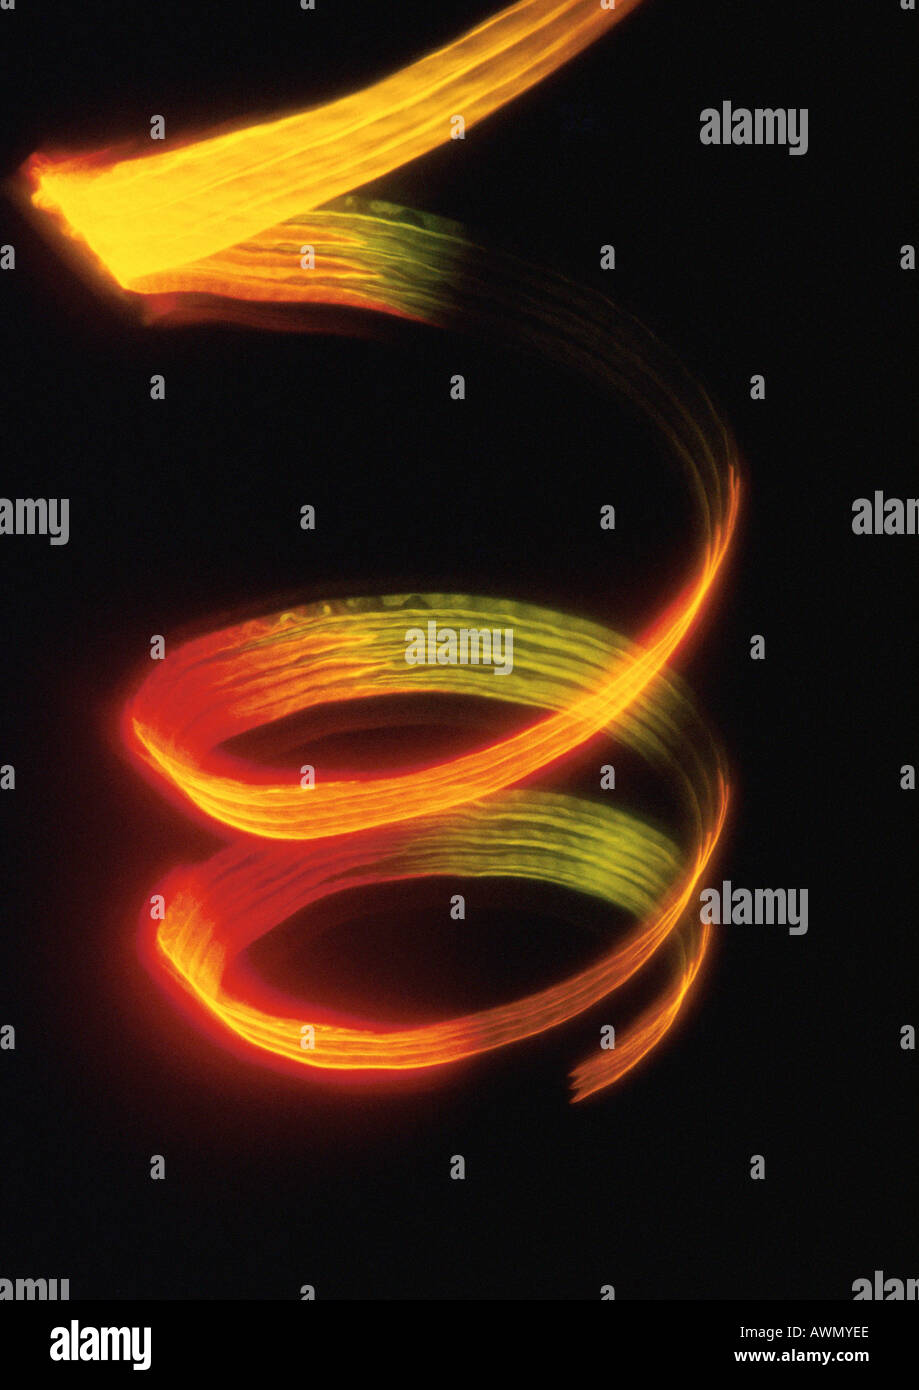 Spiraling light effect, reds and yellows. - Stock Image